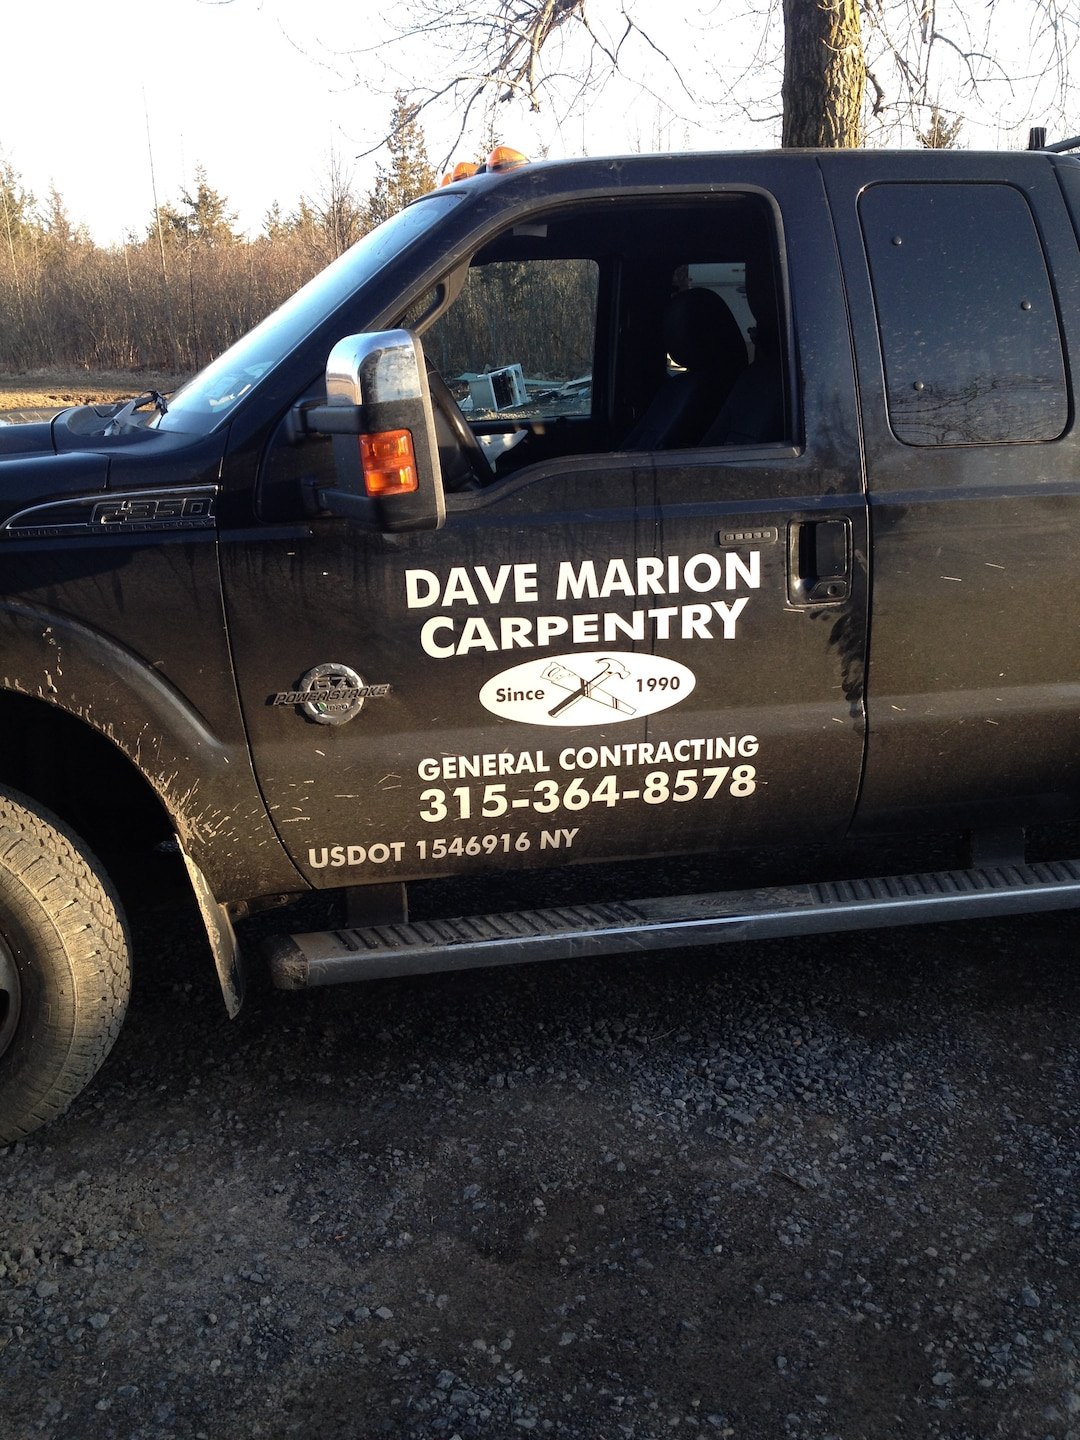 Dave Marion Carpentry